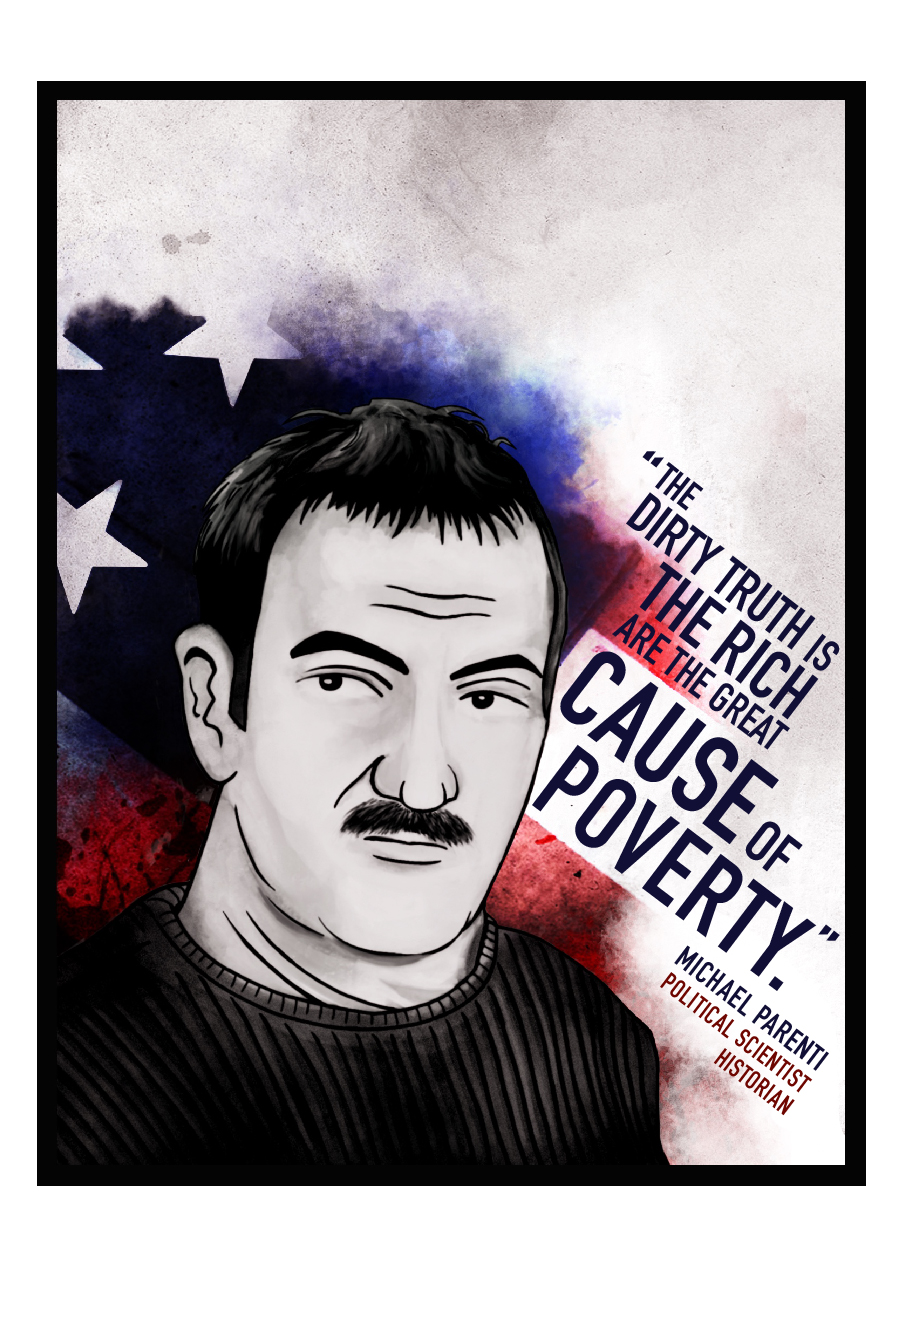 Profiles: Michael Parenti